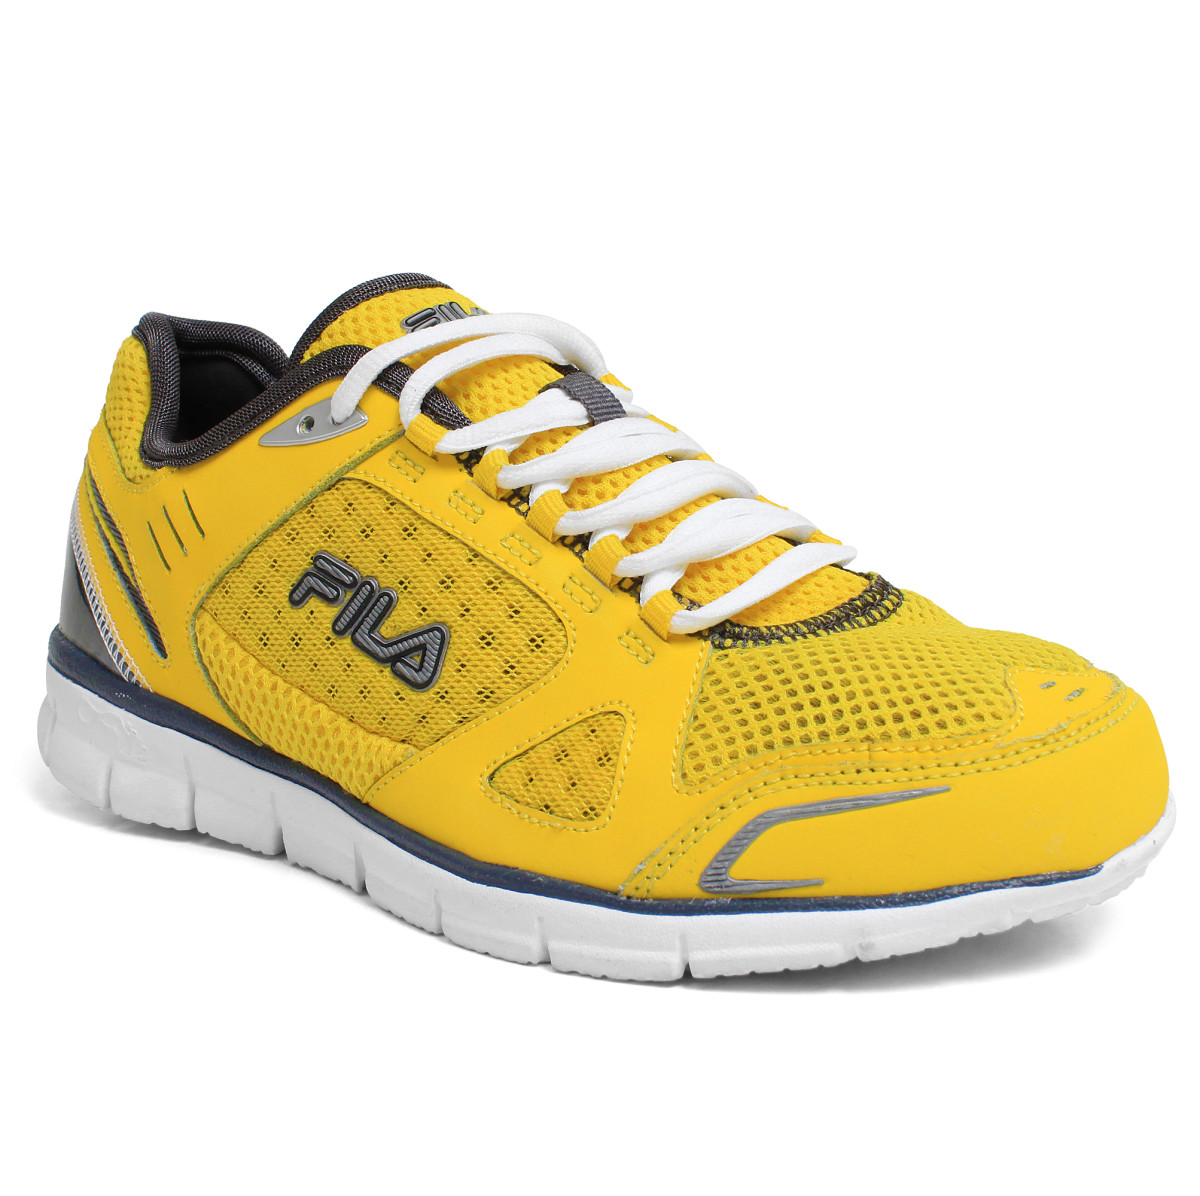 Memory Deluxe Running Shoe from Fila